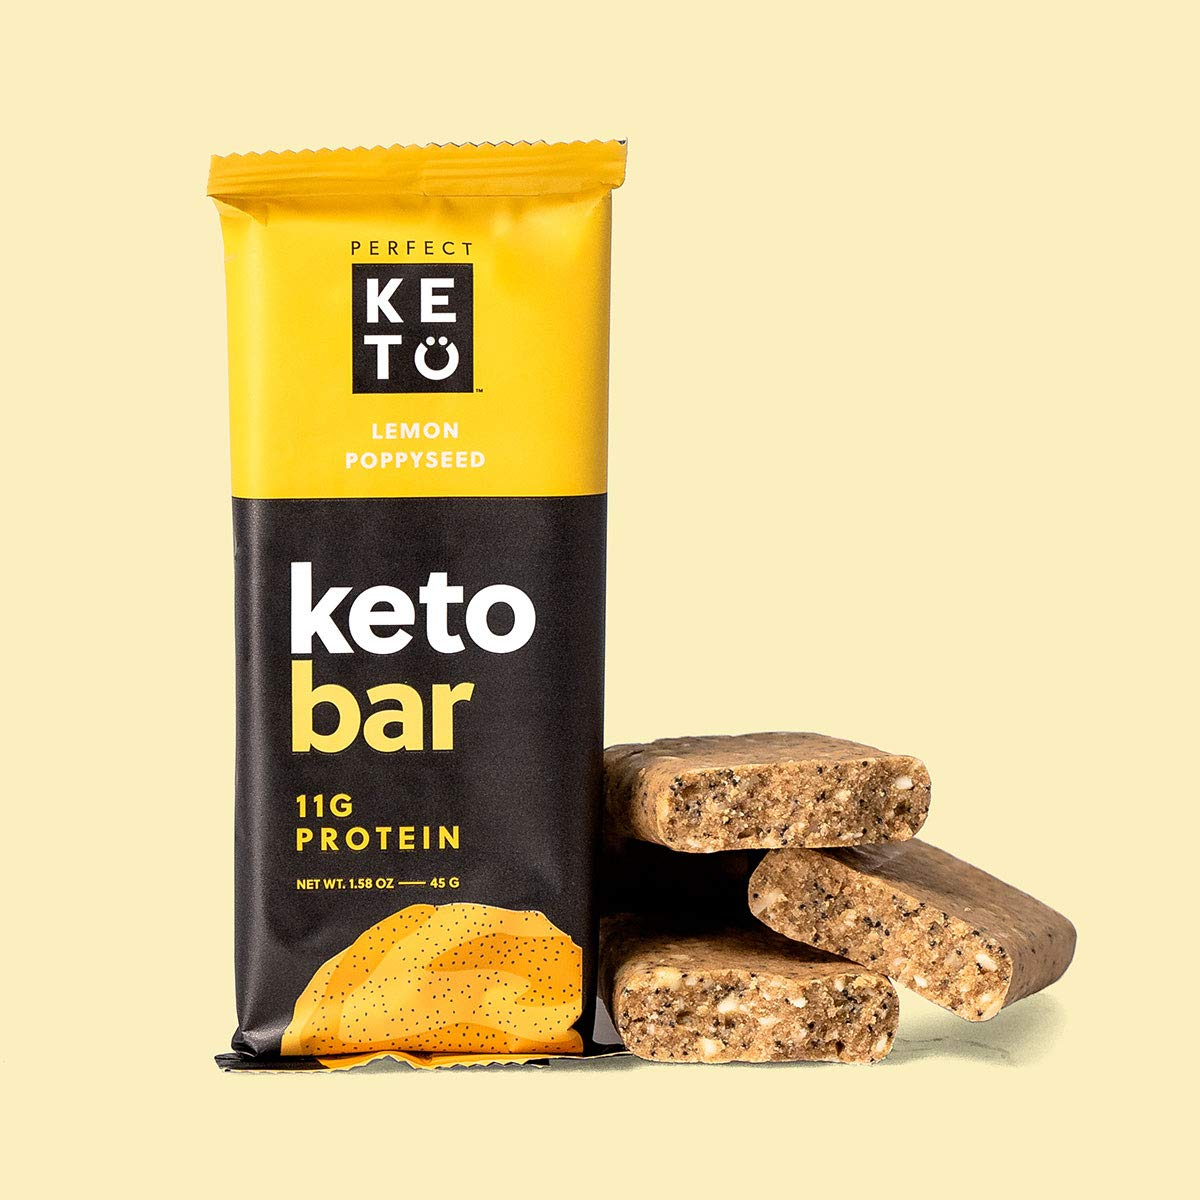 Perfect Keto Bar, Keto Snack (12 Count), No Added Sugar. 10g of Protein, Coconut Oil, and Collagen, with a Touch of Sea Salt and Stevia. (12 Bars, Lemon Poppyseed) by Perfect Keto